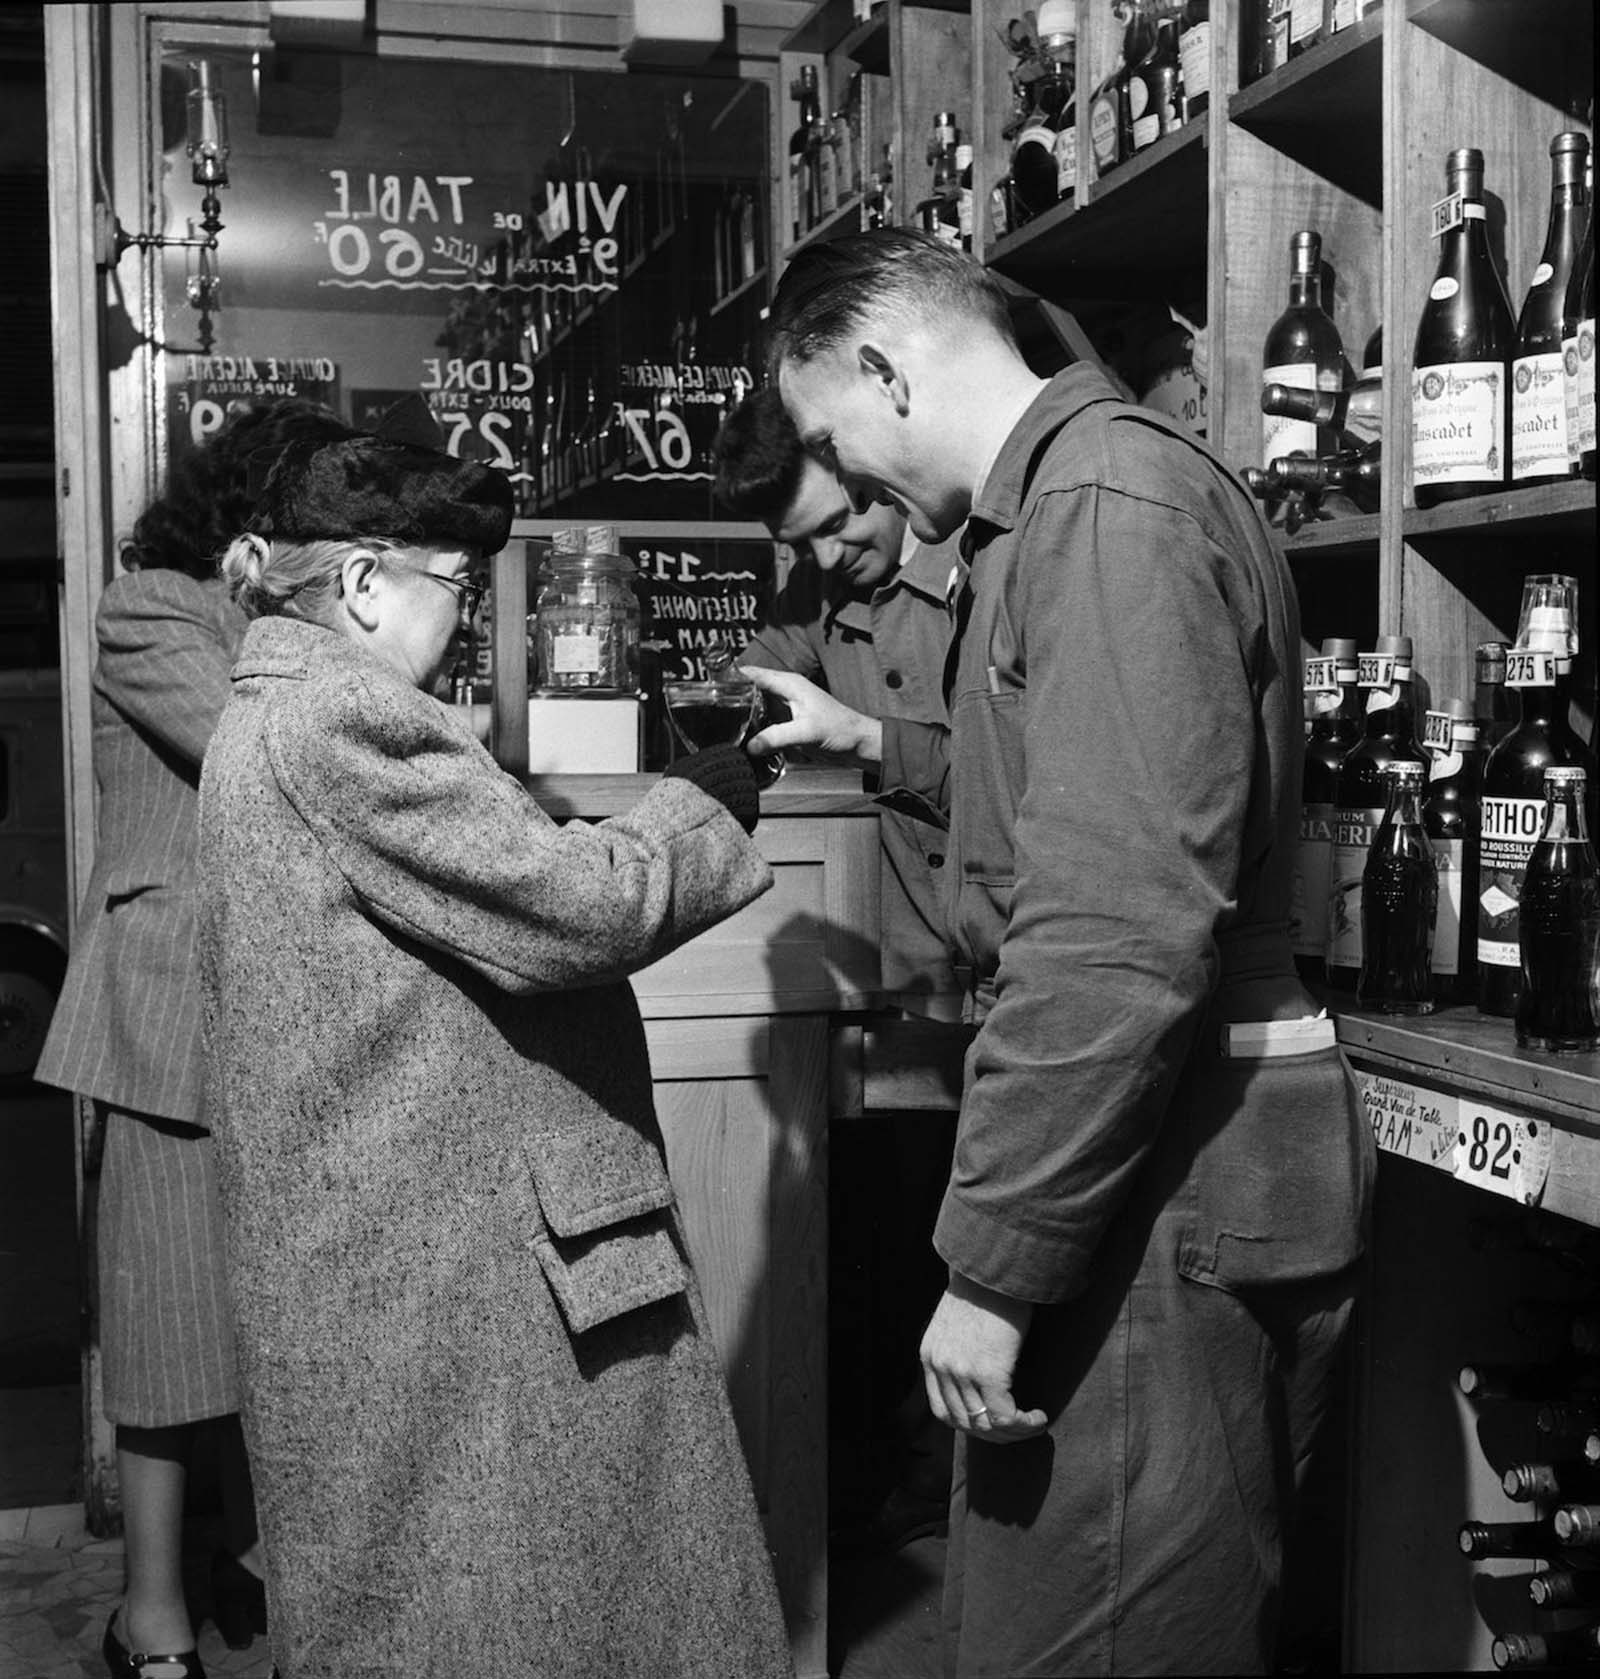 In a Paris shop, a man pours a bottle of Coca-Cola into a glass held by an elderly woman.